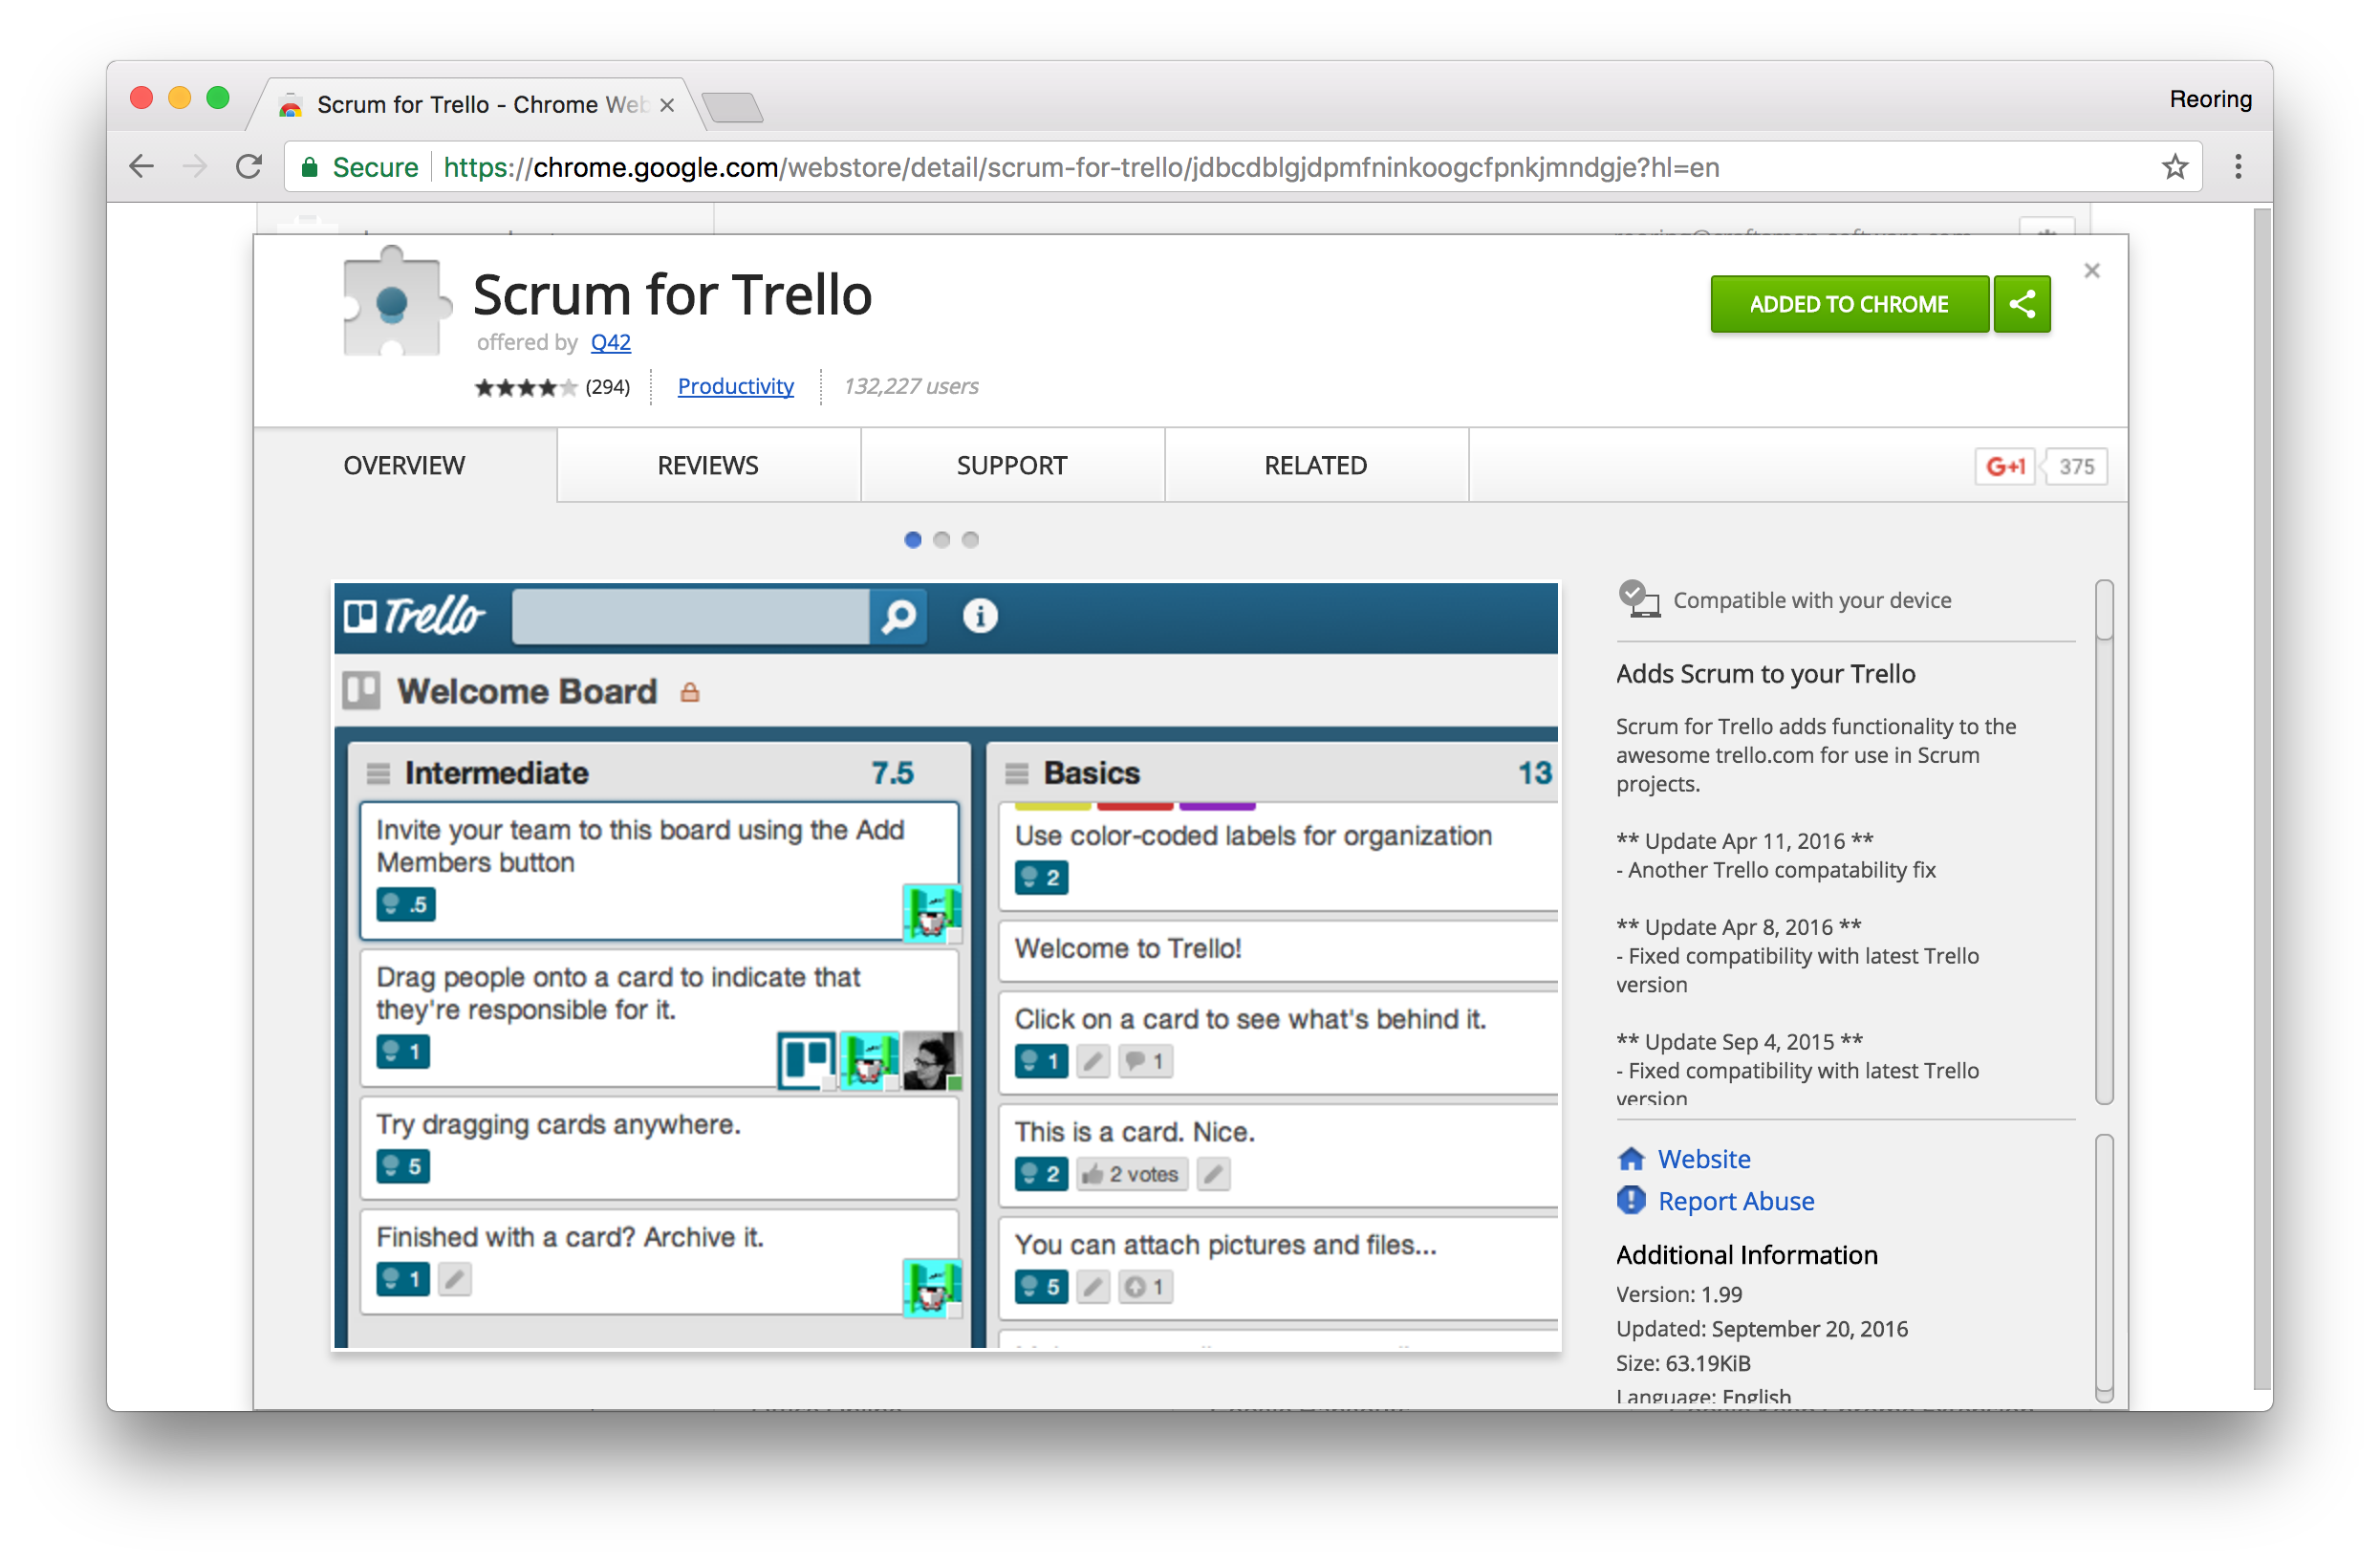 scrum_for_trello.png (647.6 kB)